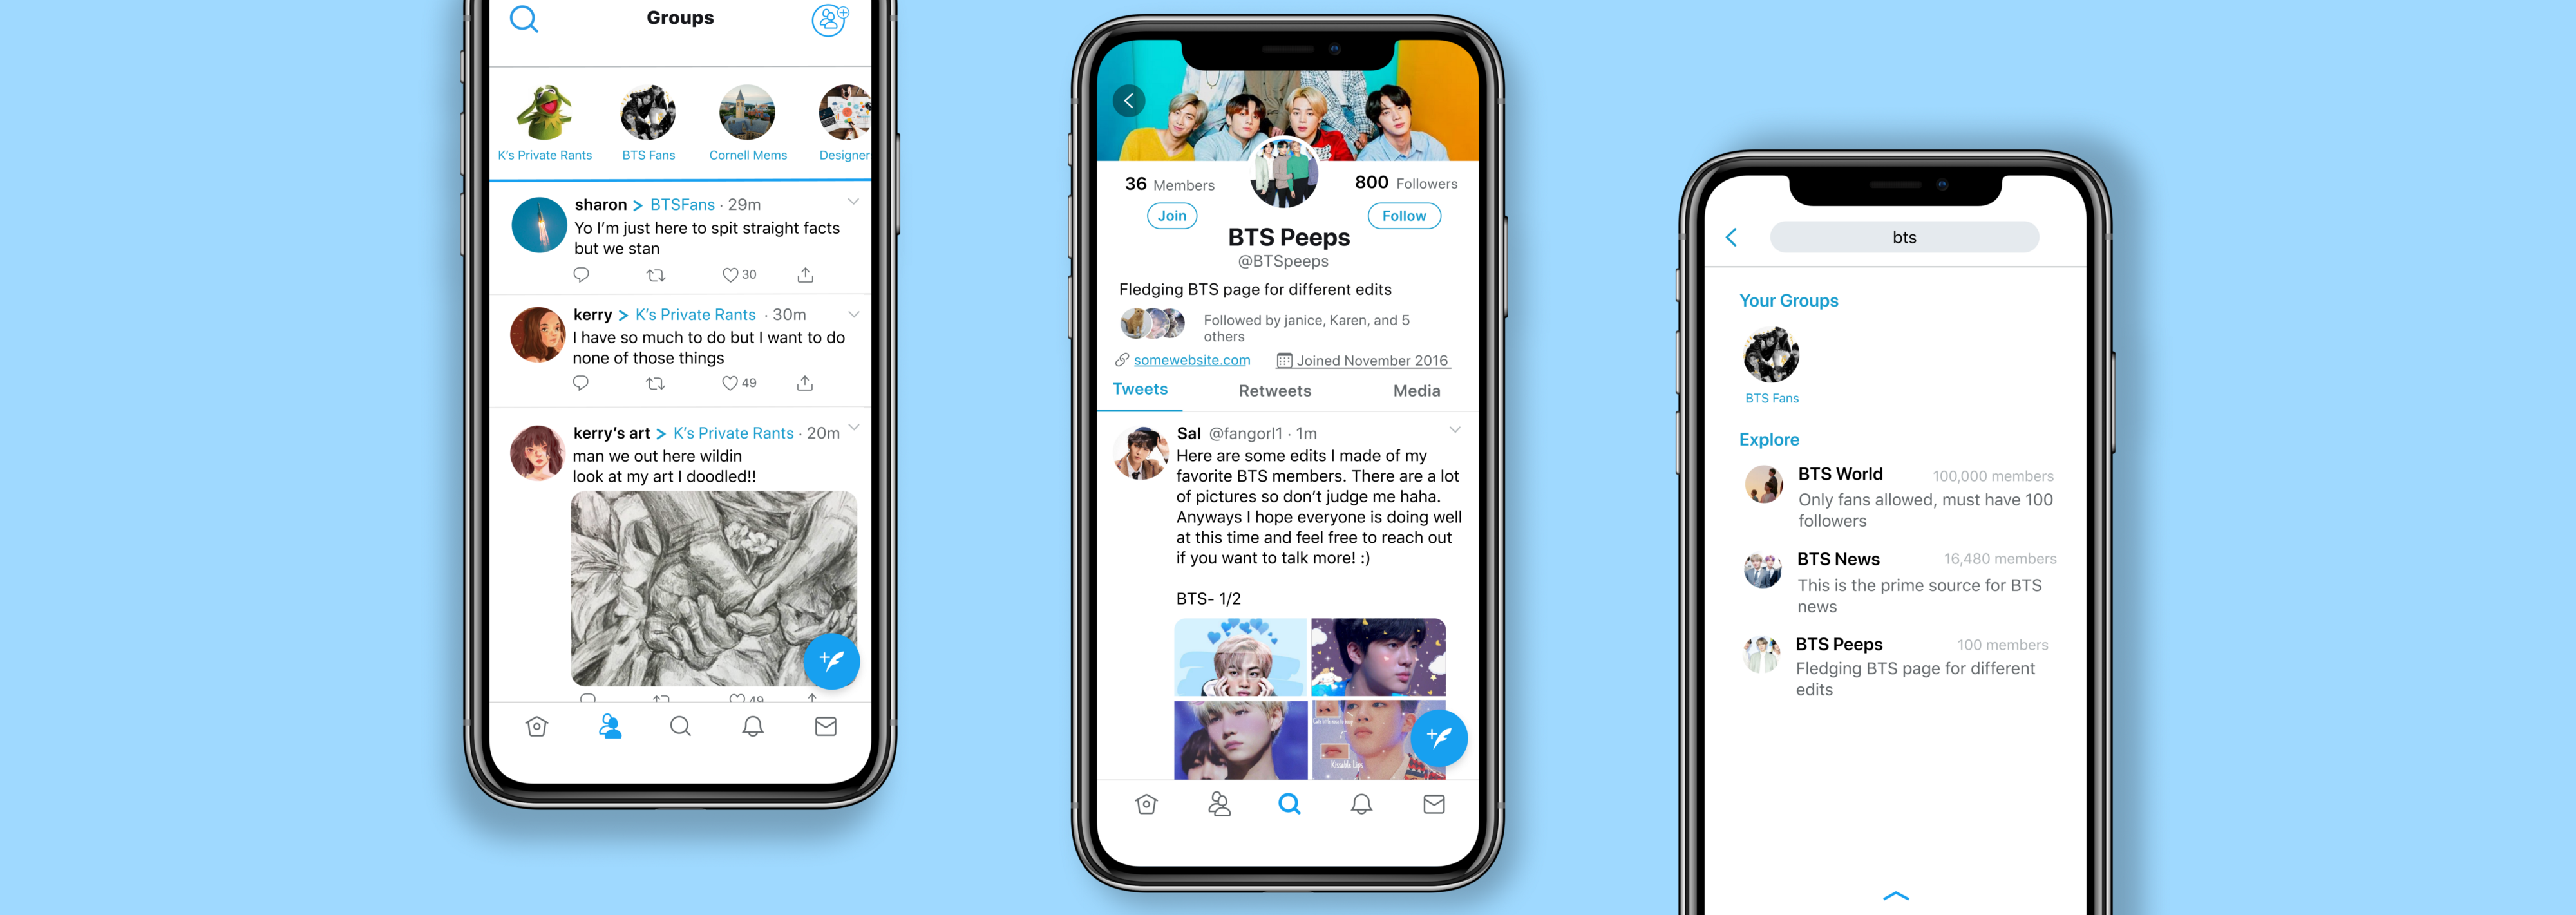 Three iphone screens, left is the home page for groups, center is the details for groups, and right is how to search groups